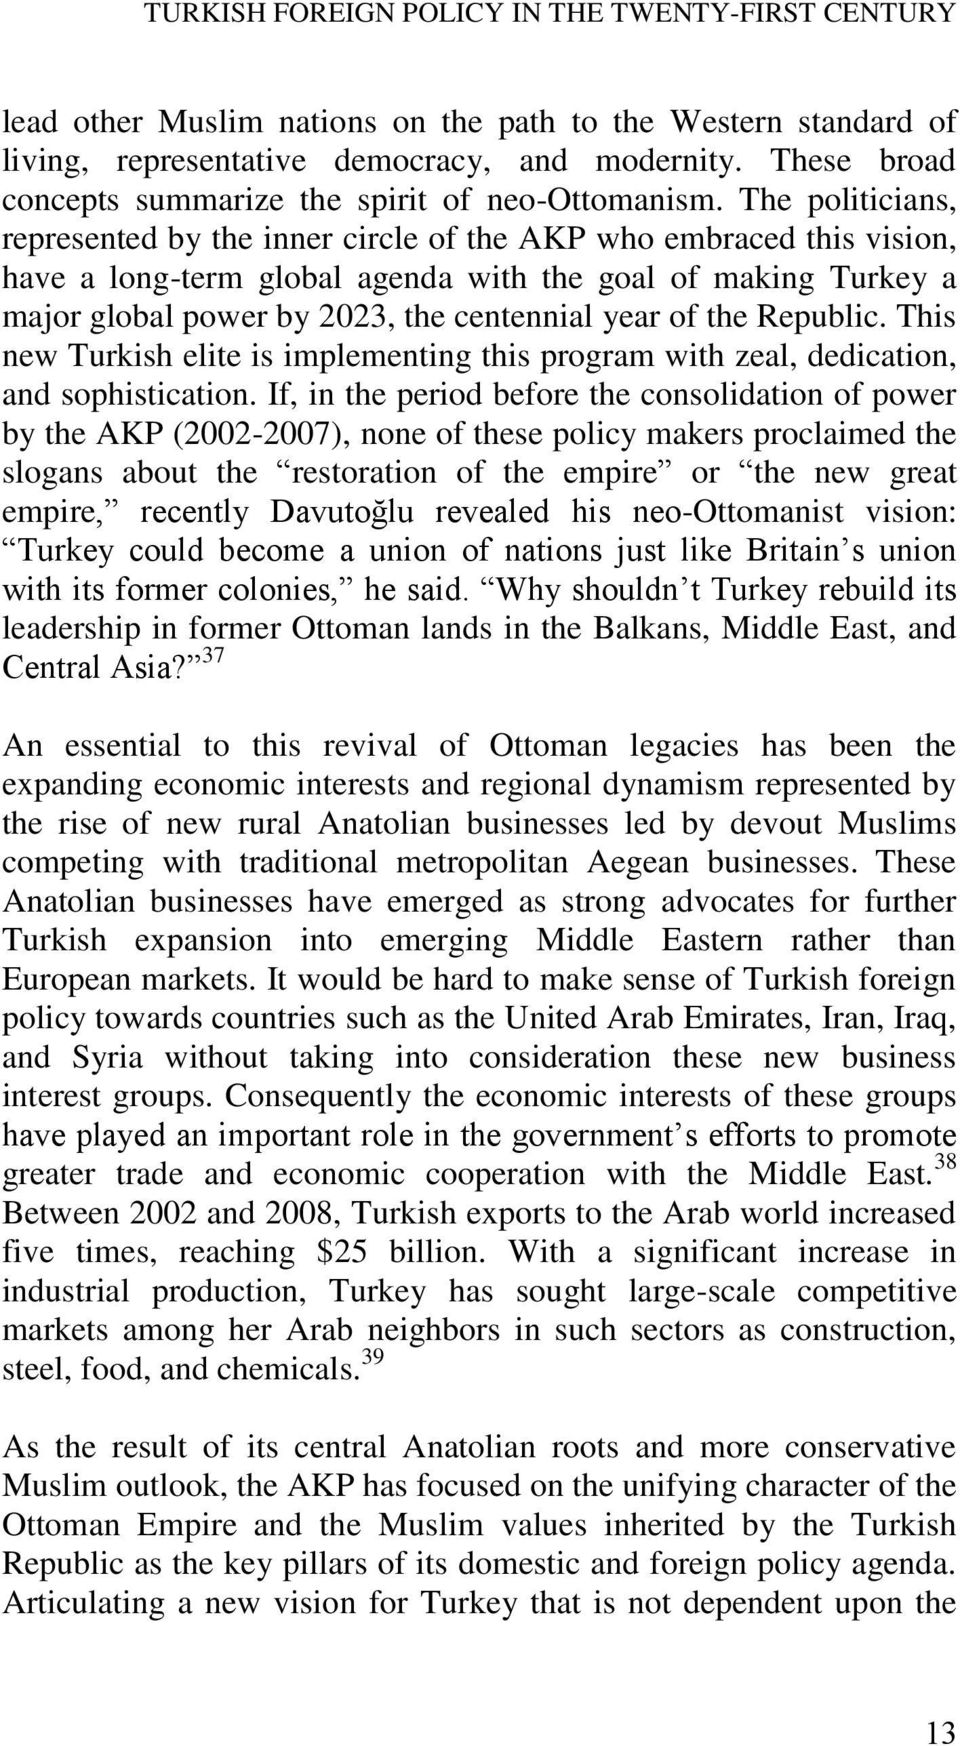 The politicians, represented by the inner circle of the AKP who embraced this vision, have a long-term global agenda with the goal of making Turkey a major global power by 2023, the centennial year